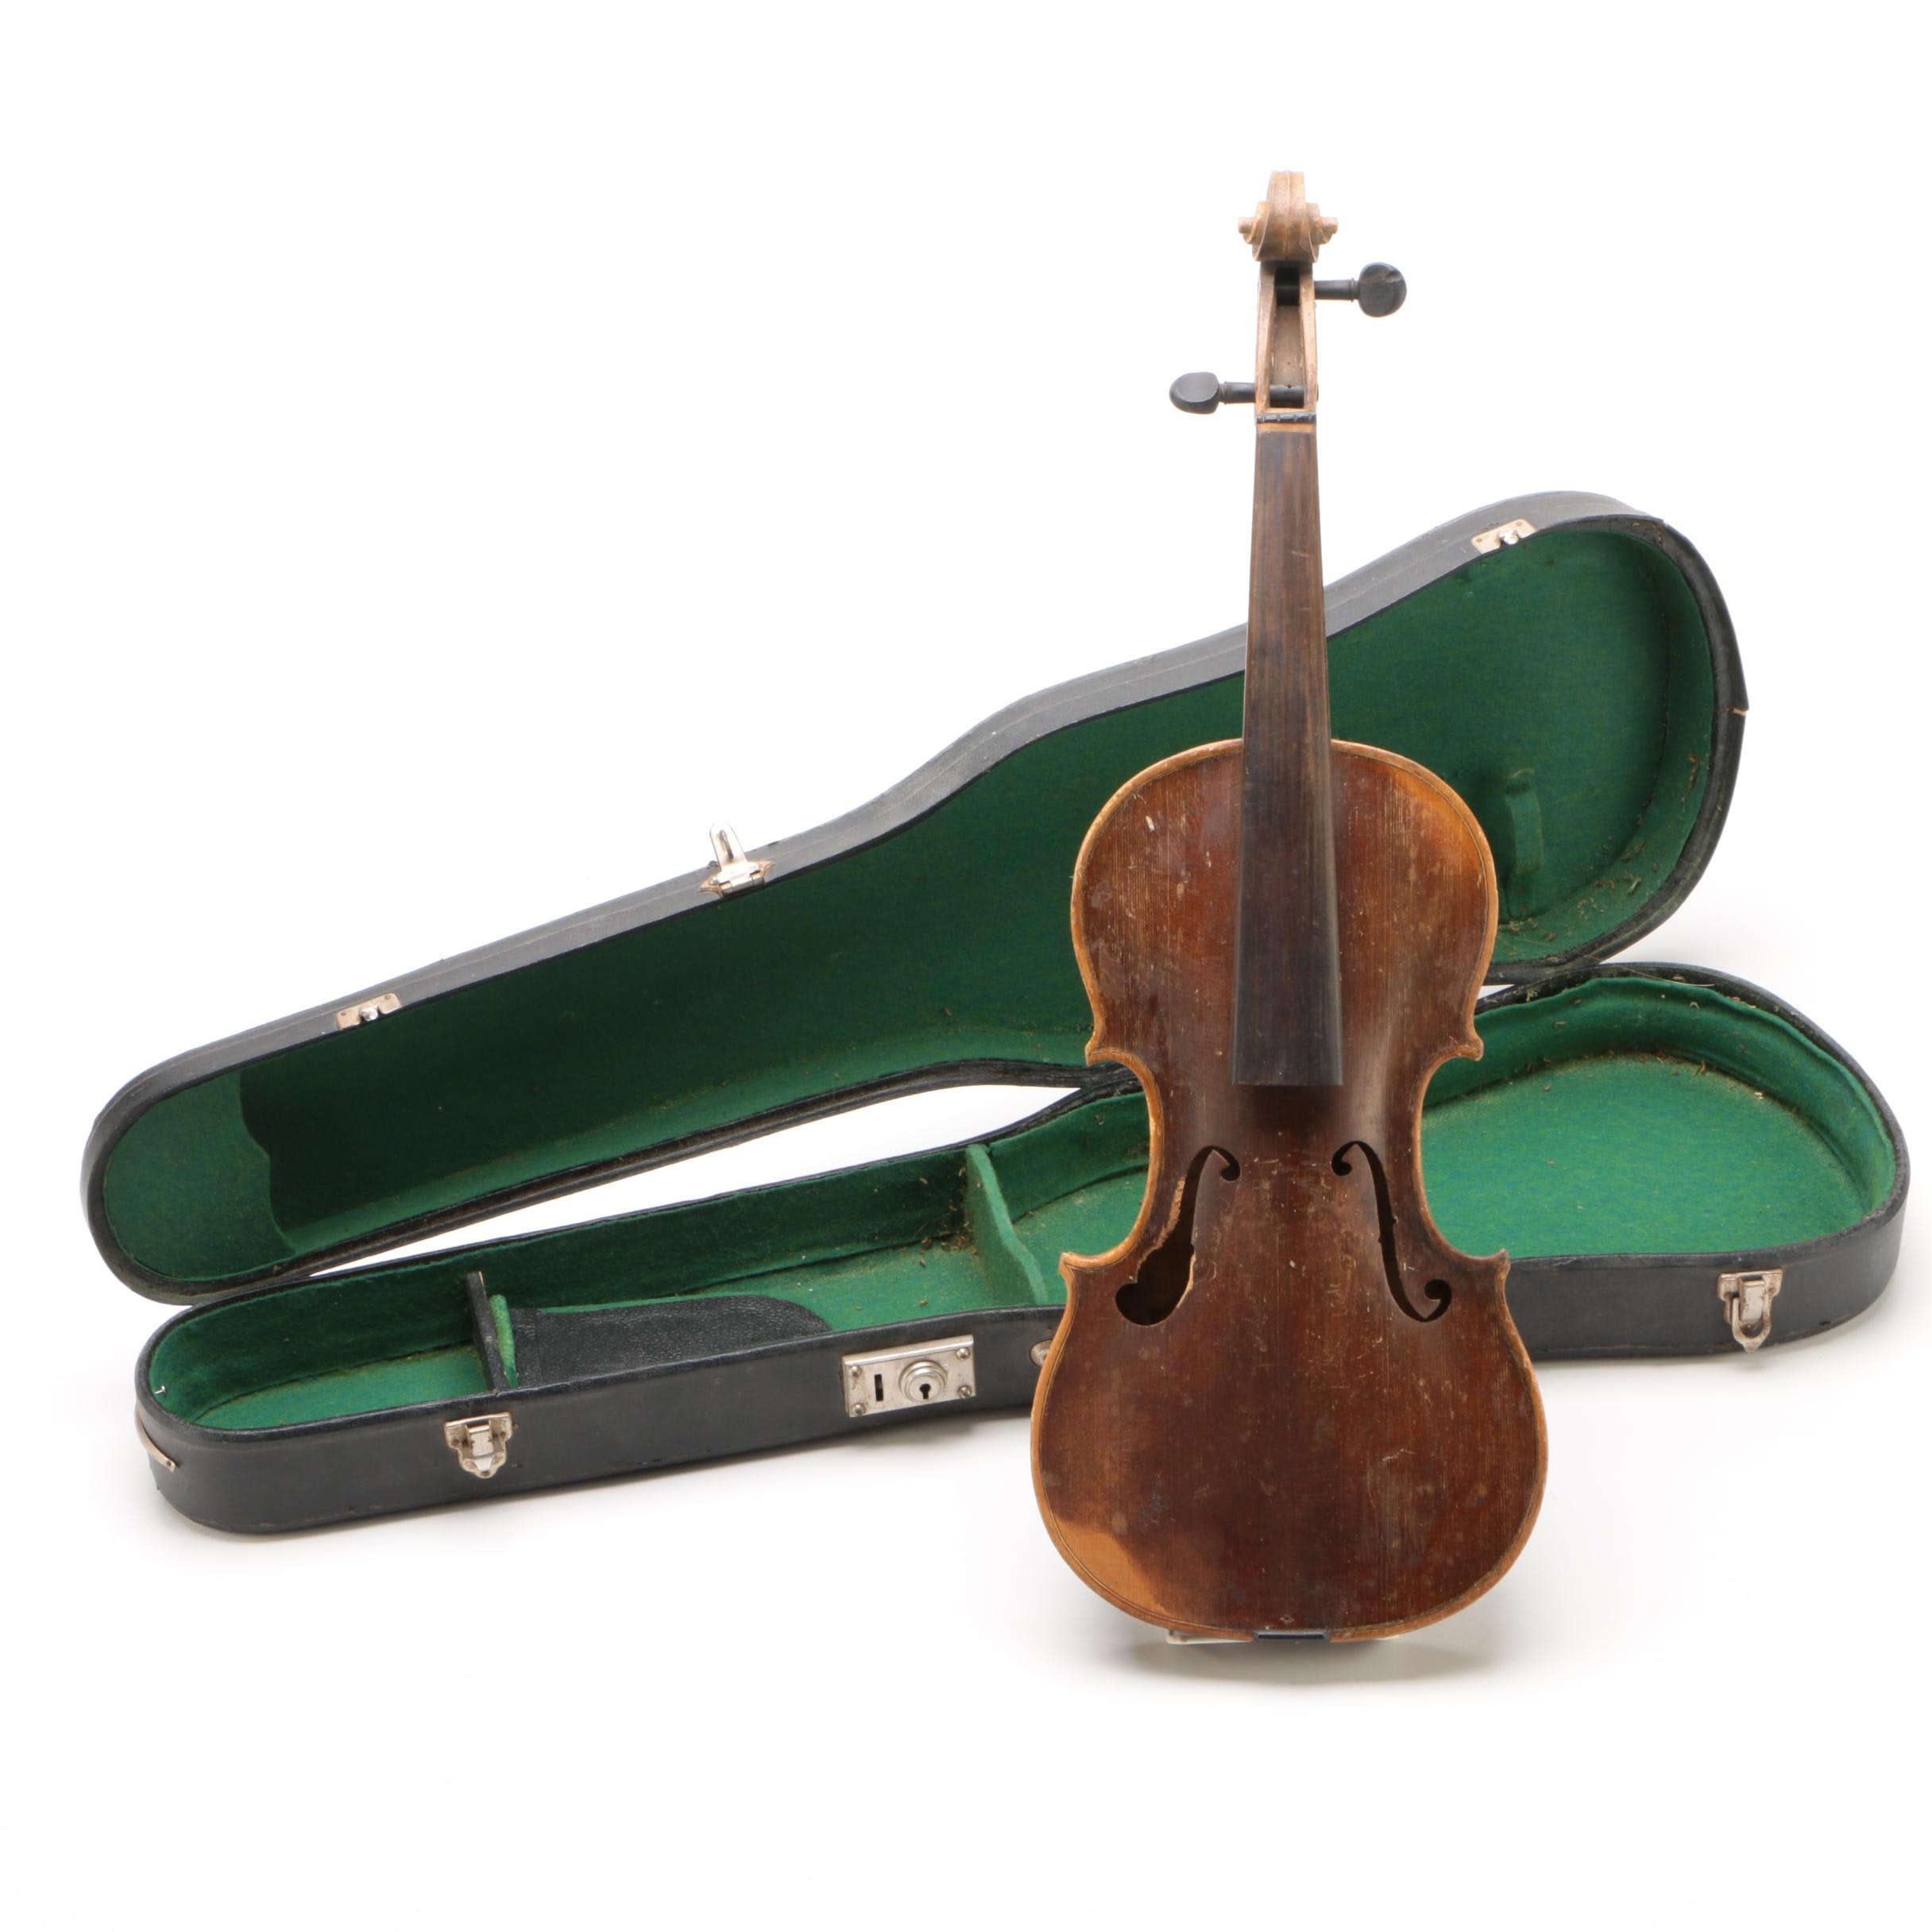 Spruce and Maple 4/4 Salvage Violin, Early 19th Century